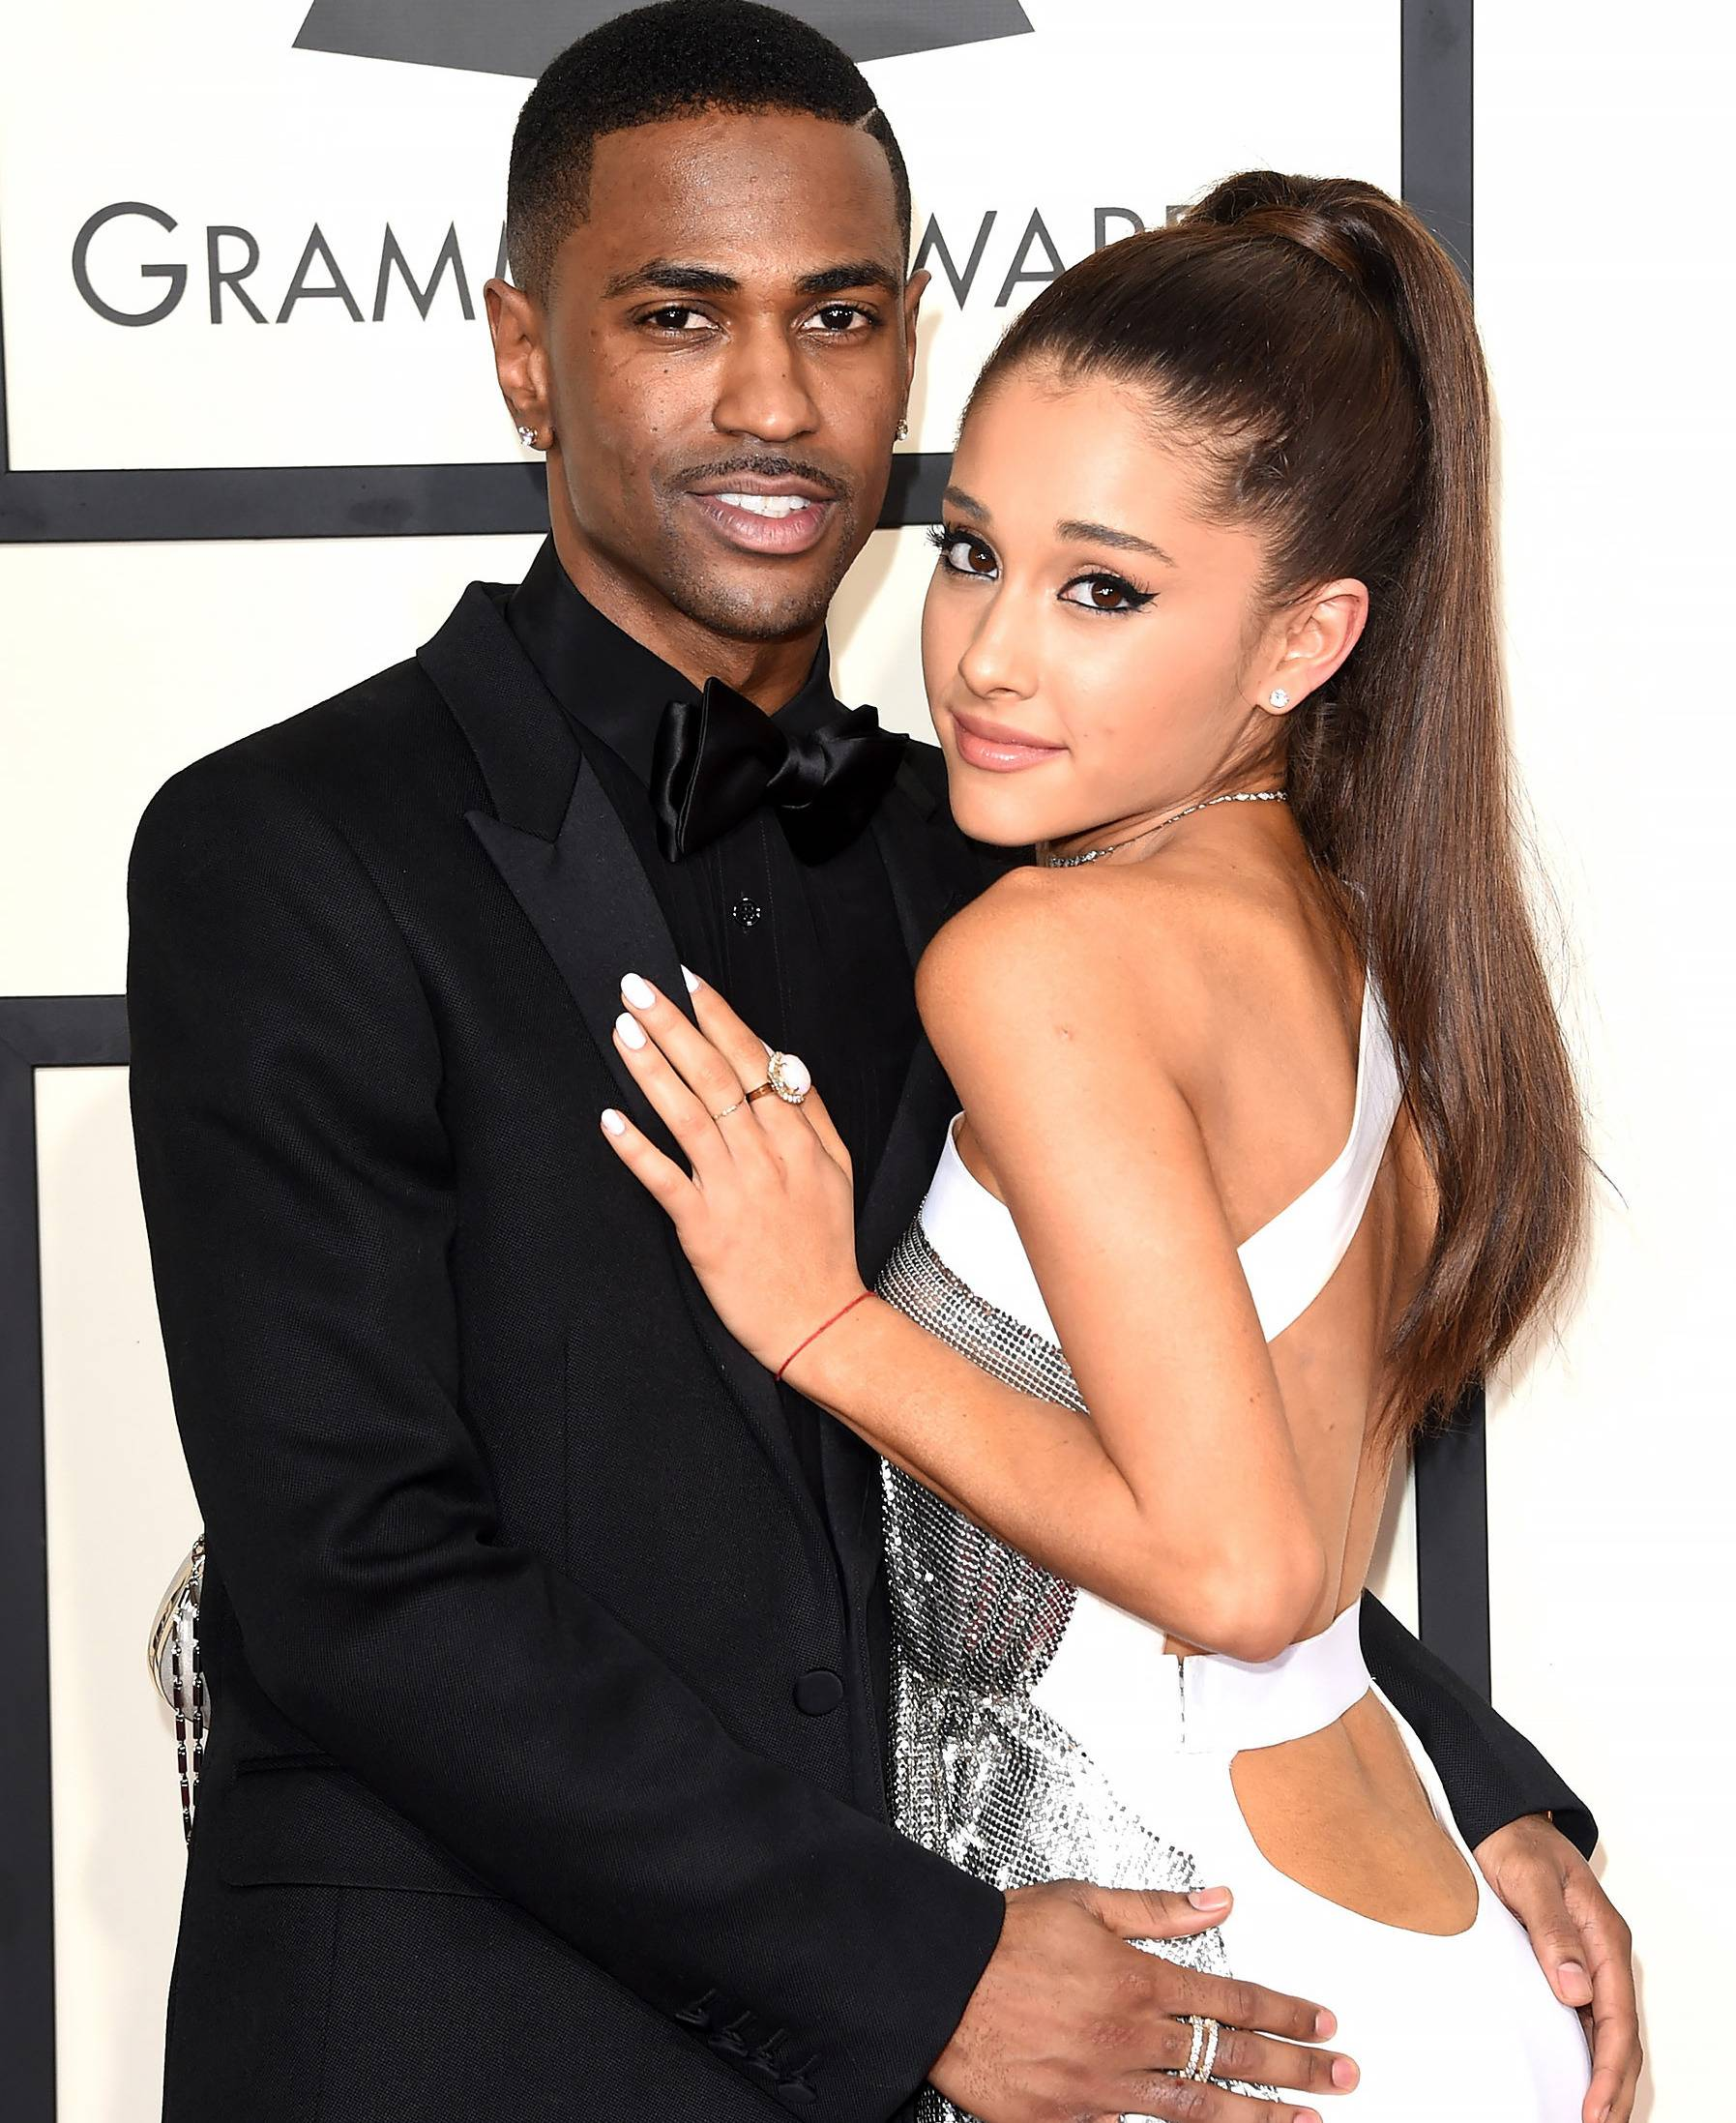 "Ariana Grande Big Sean ""data-caption ="" Ariana Grande and Big Sean "". Data-source ="" @ people.com"